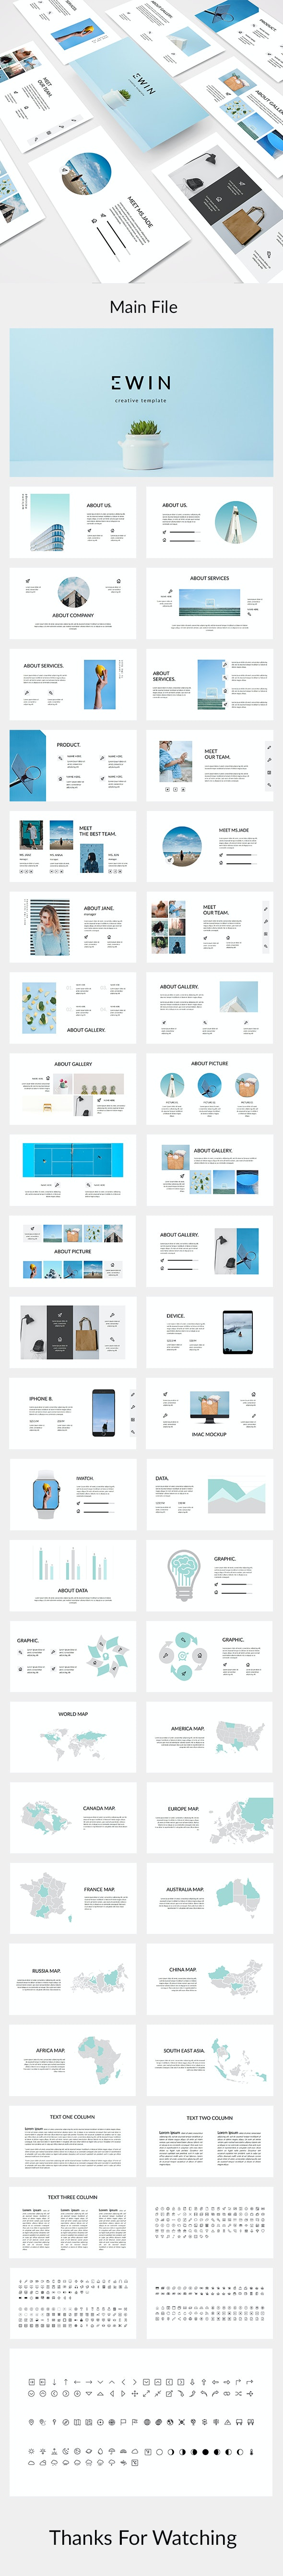 Ewin - Creative Google Slides Template - Google Slides Presentation Templates